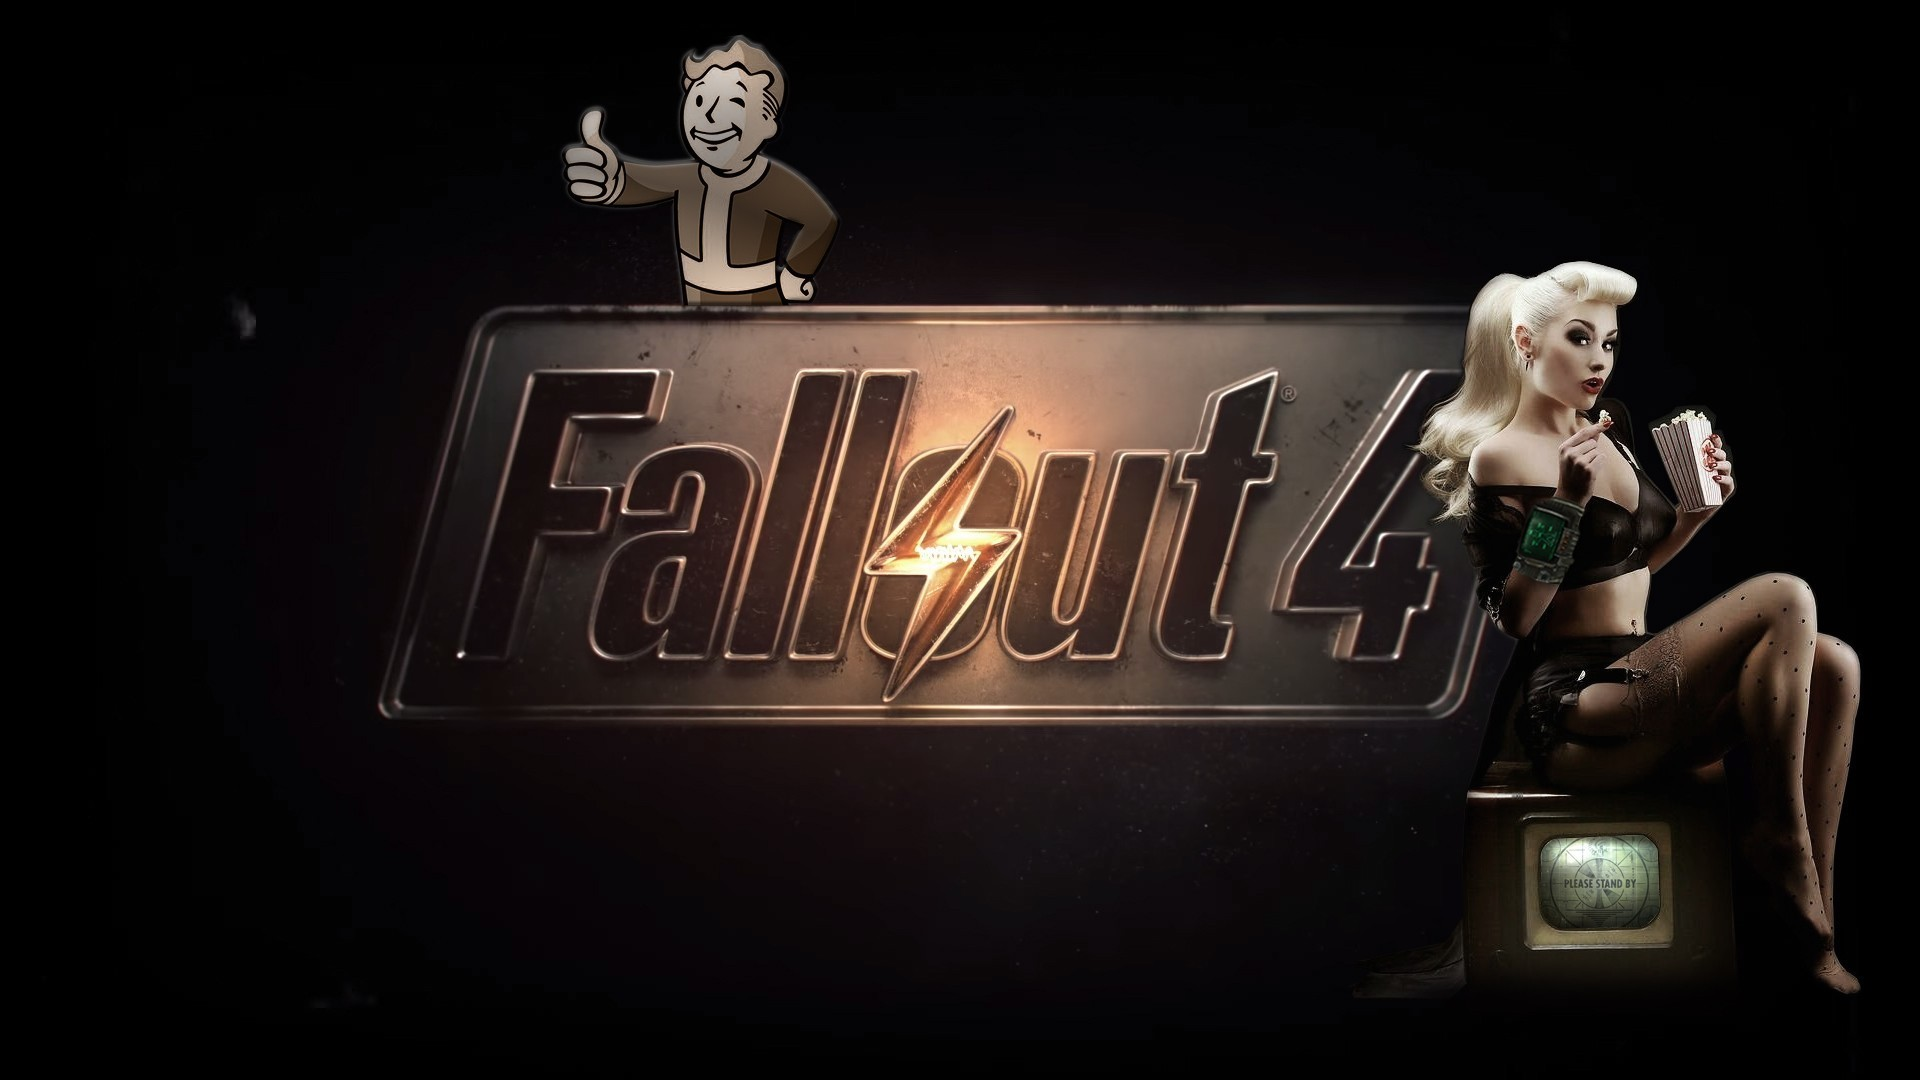 Res: 1920x1080, Fallout logo wallpaper pictures.